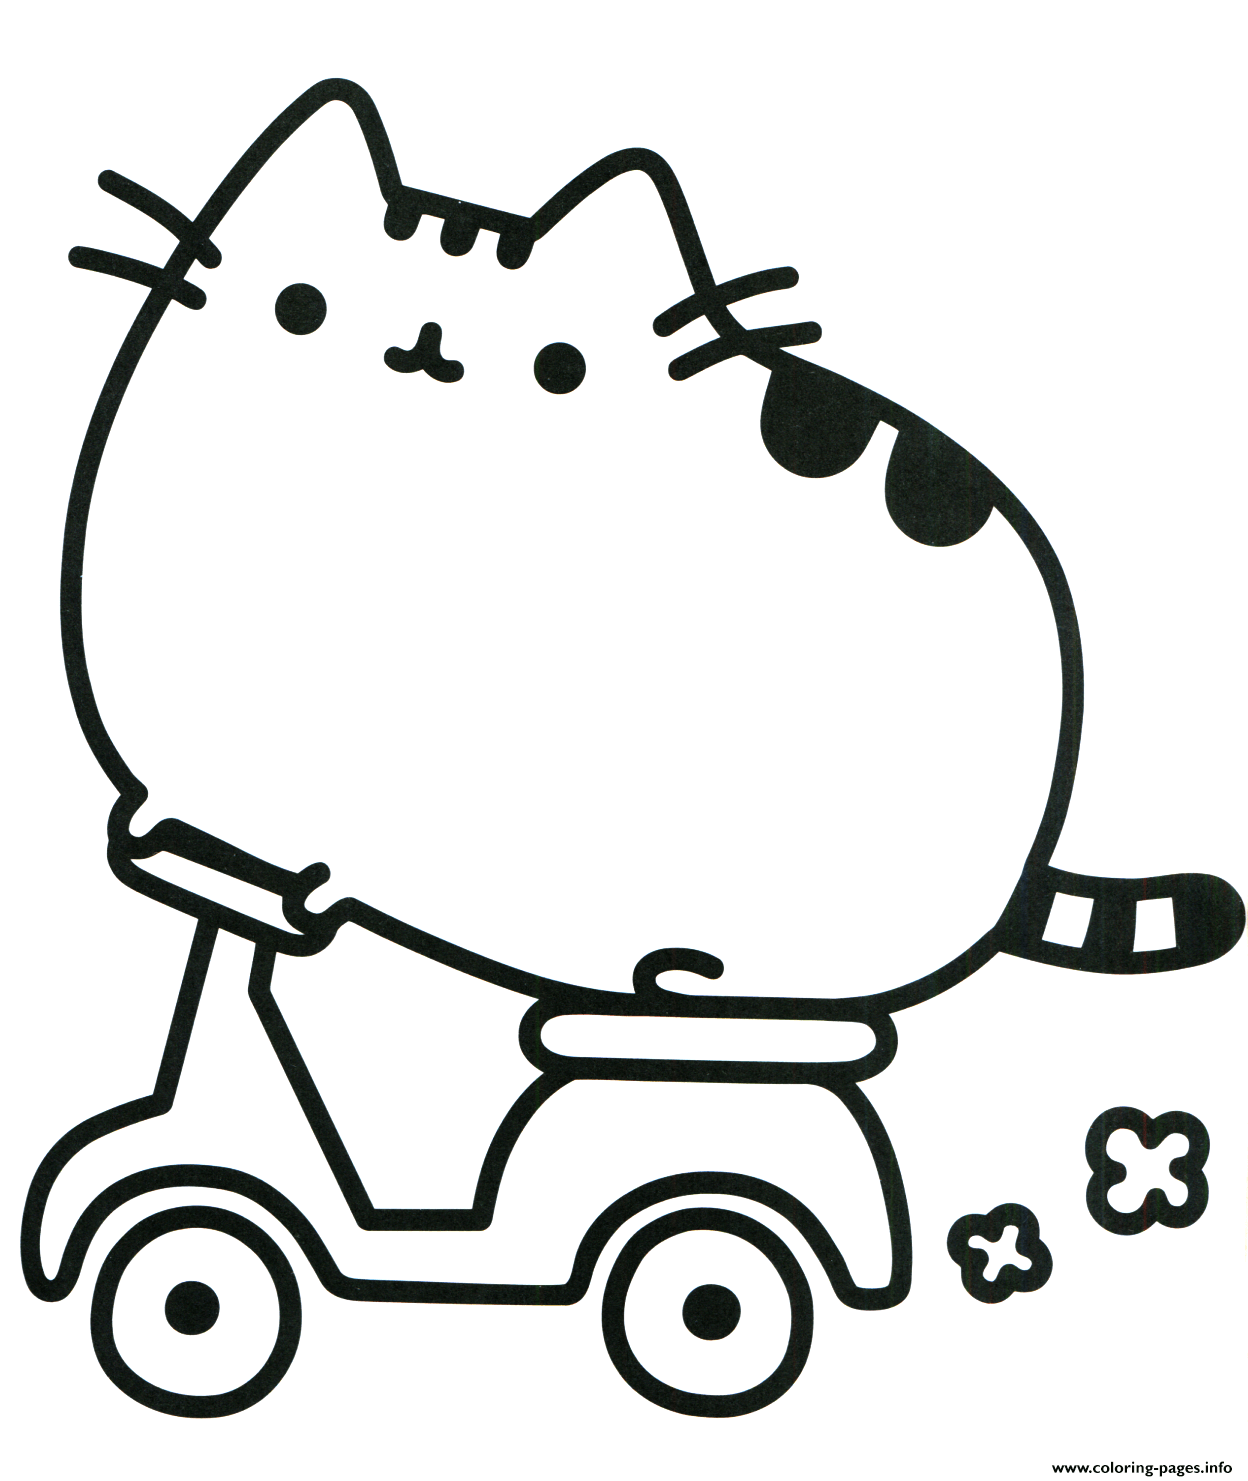 Print Pusheen Cat On Scooter Coloring Pages Pusheen Coloring Pages Cat Coloring Page Cat Coloring Book